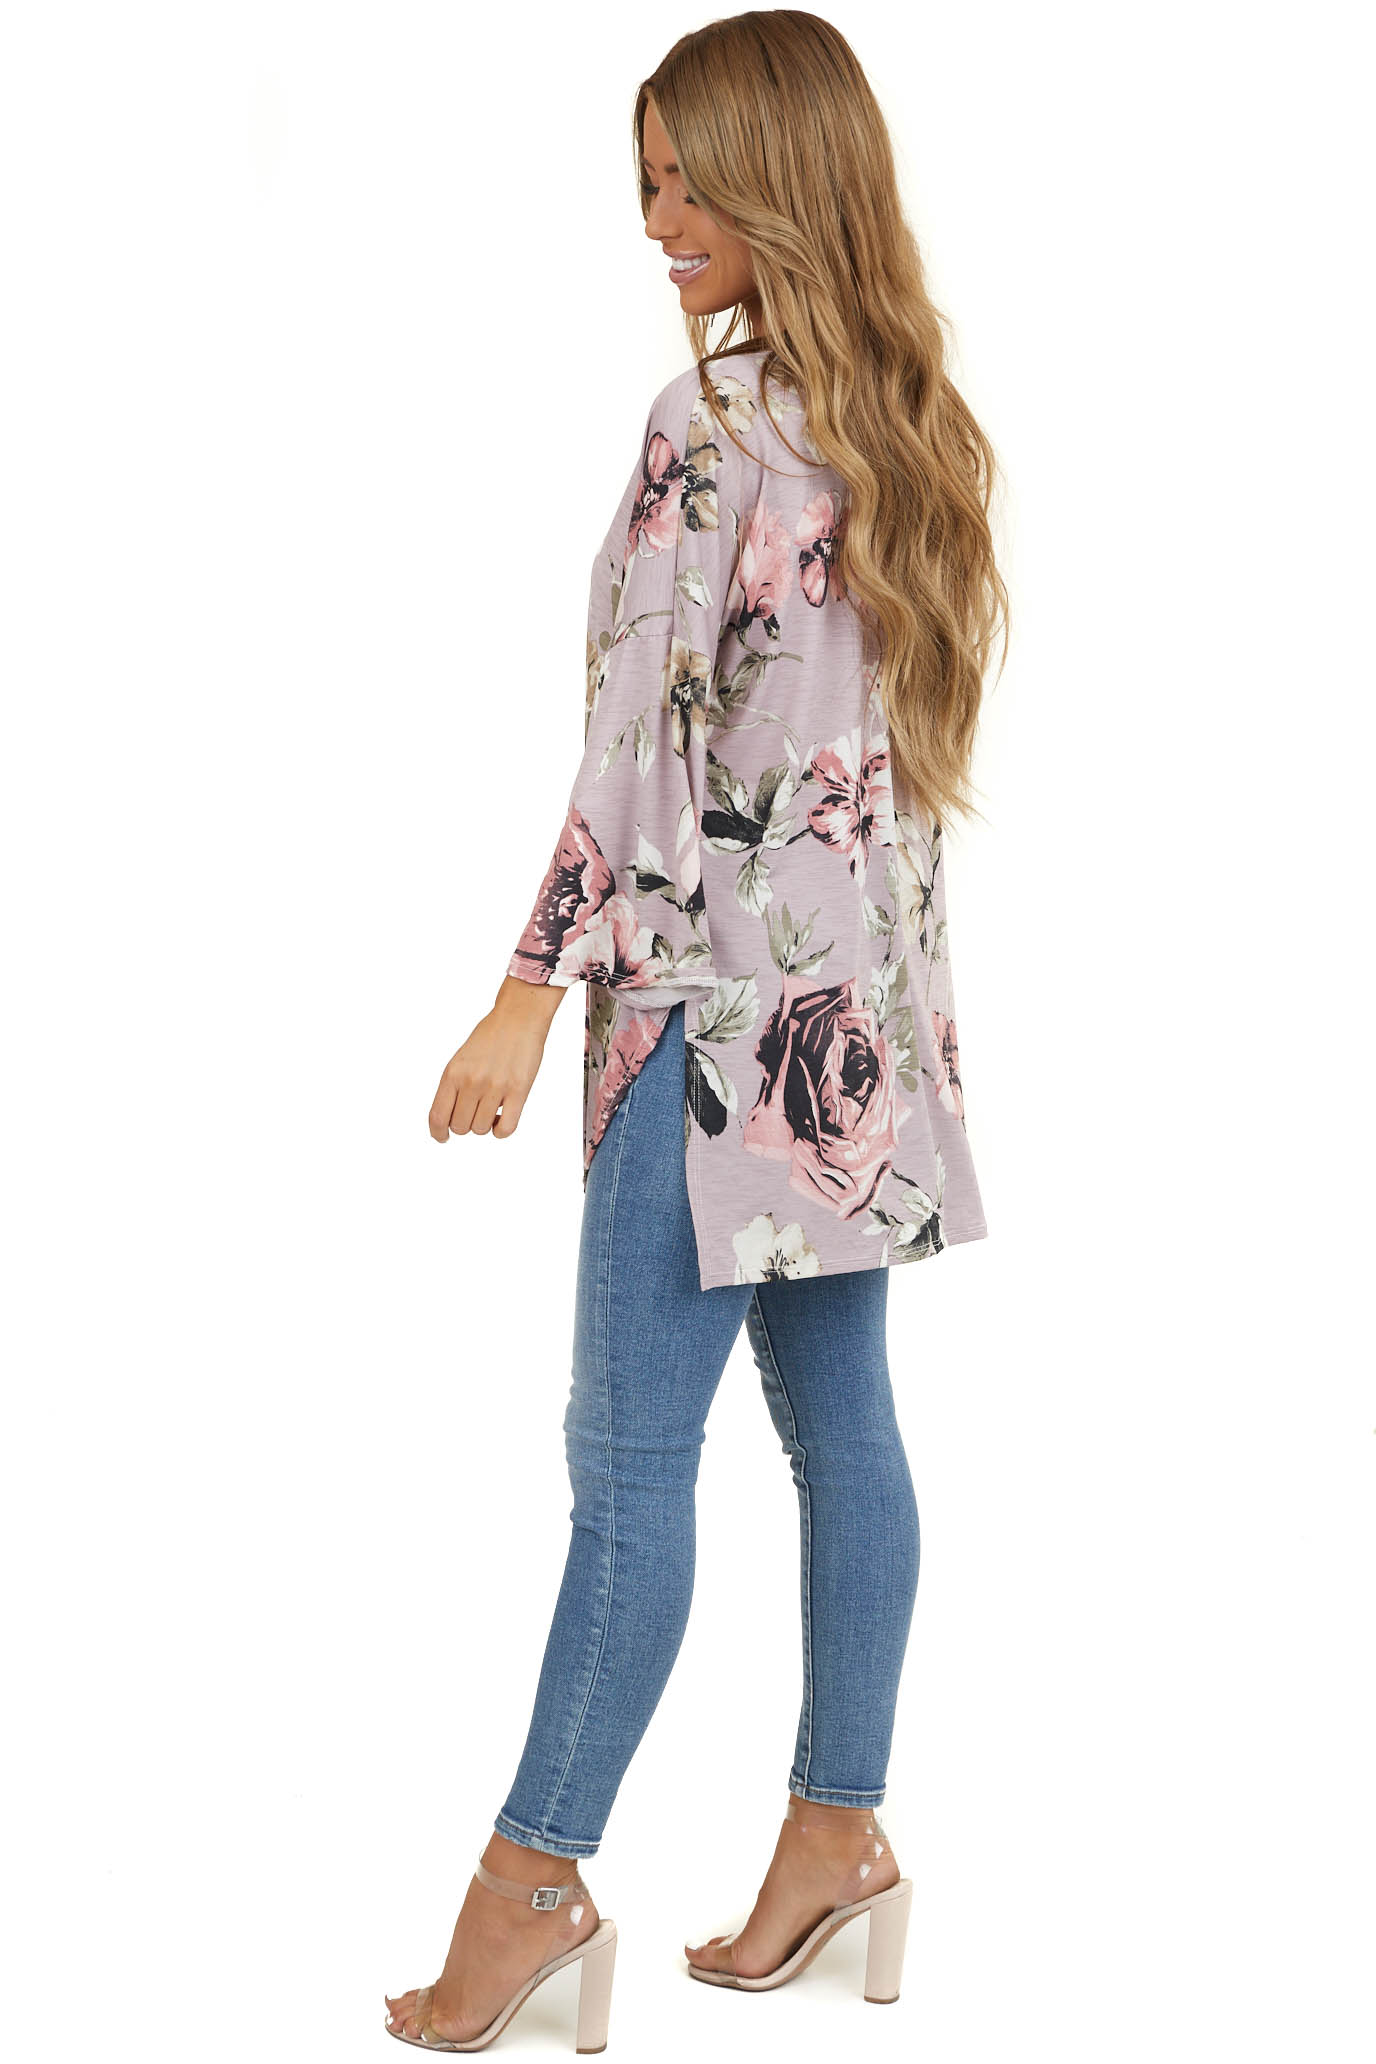 Lavender Floral 3/4 Length Sleeve Kimono with Side Slits